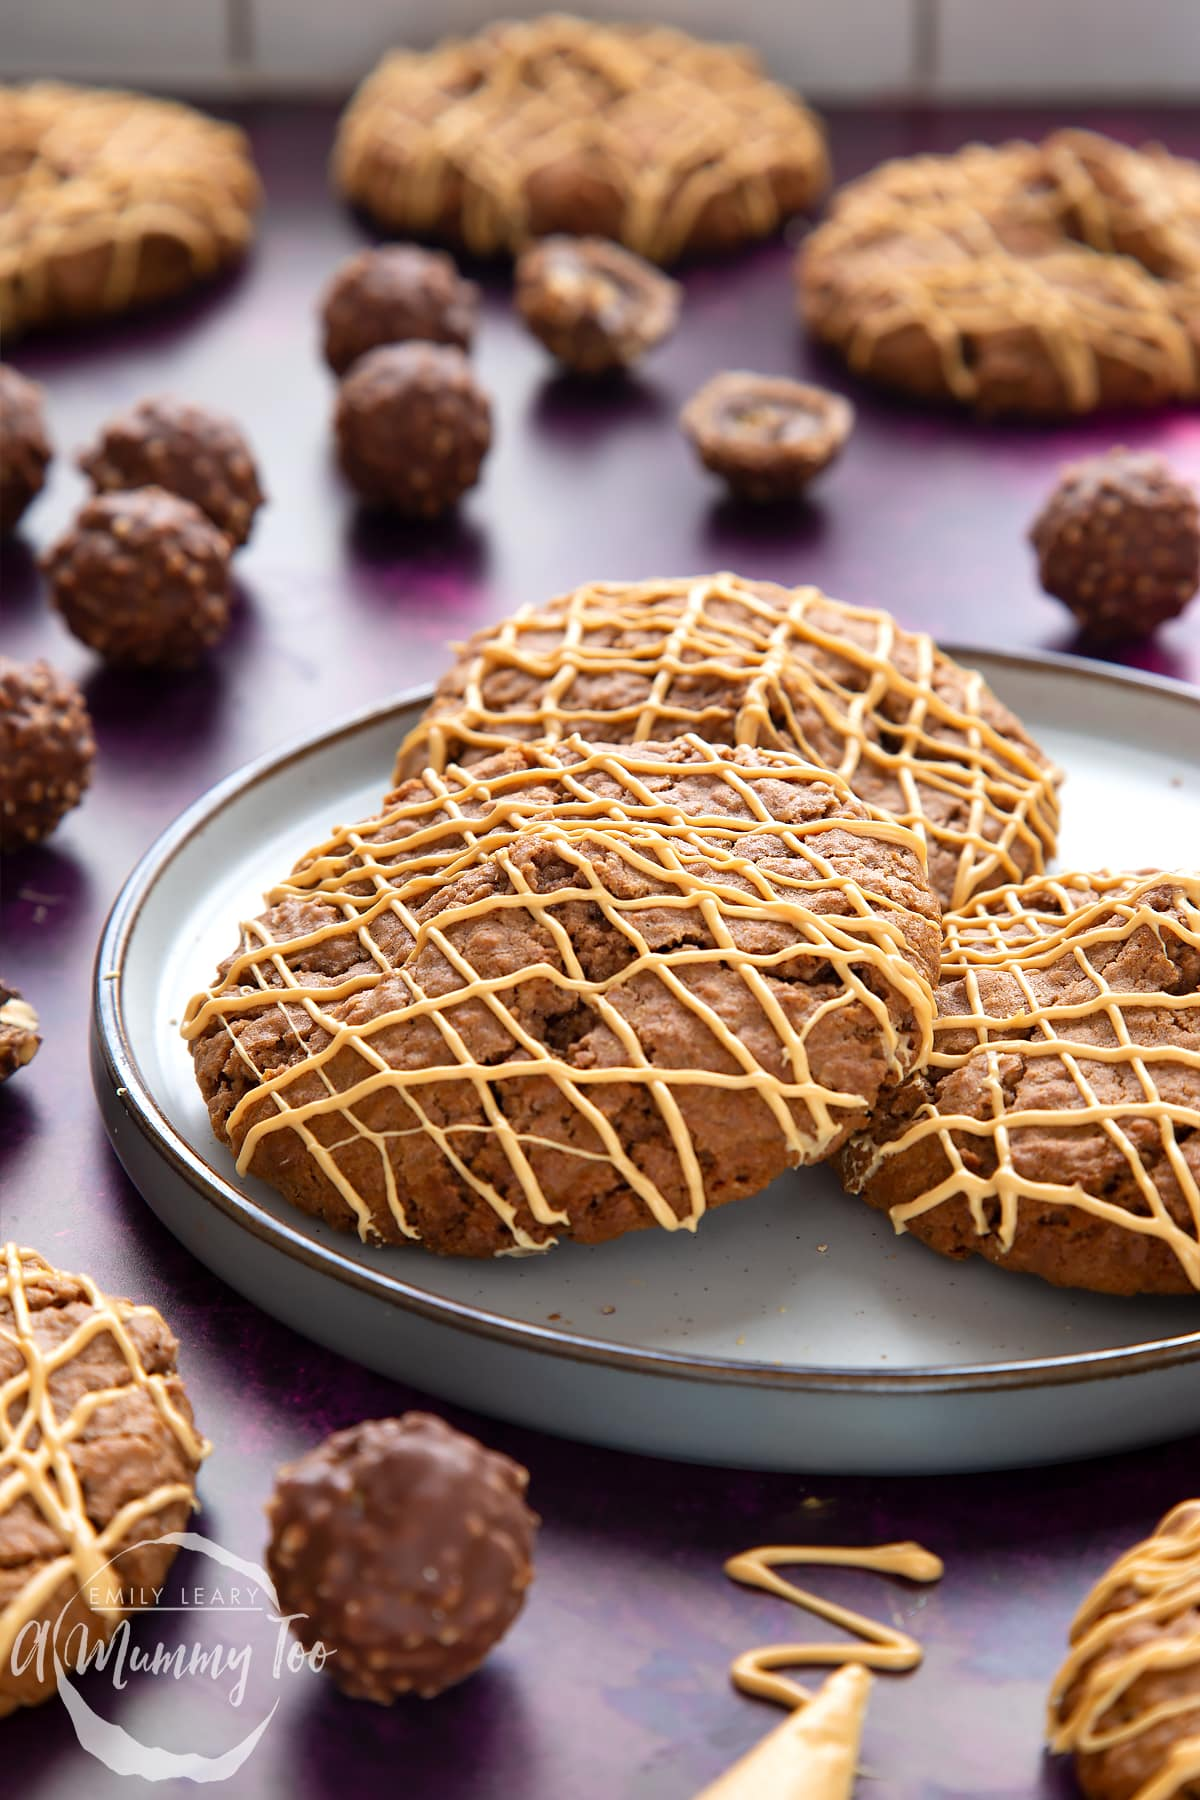 Ferrero Rocher cookies on a plate. They are decorated with golden white chocolate.